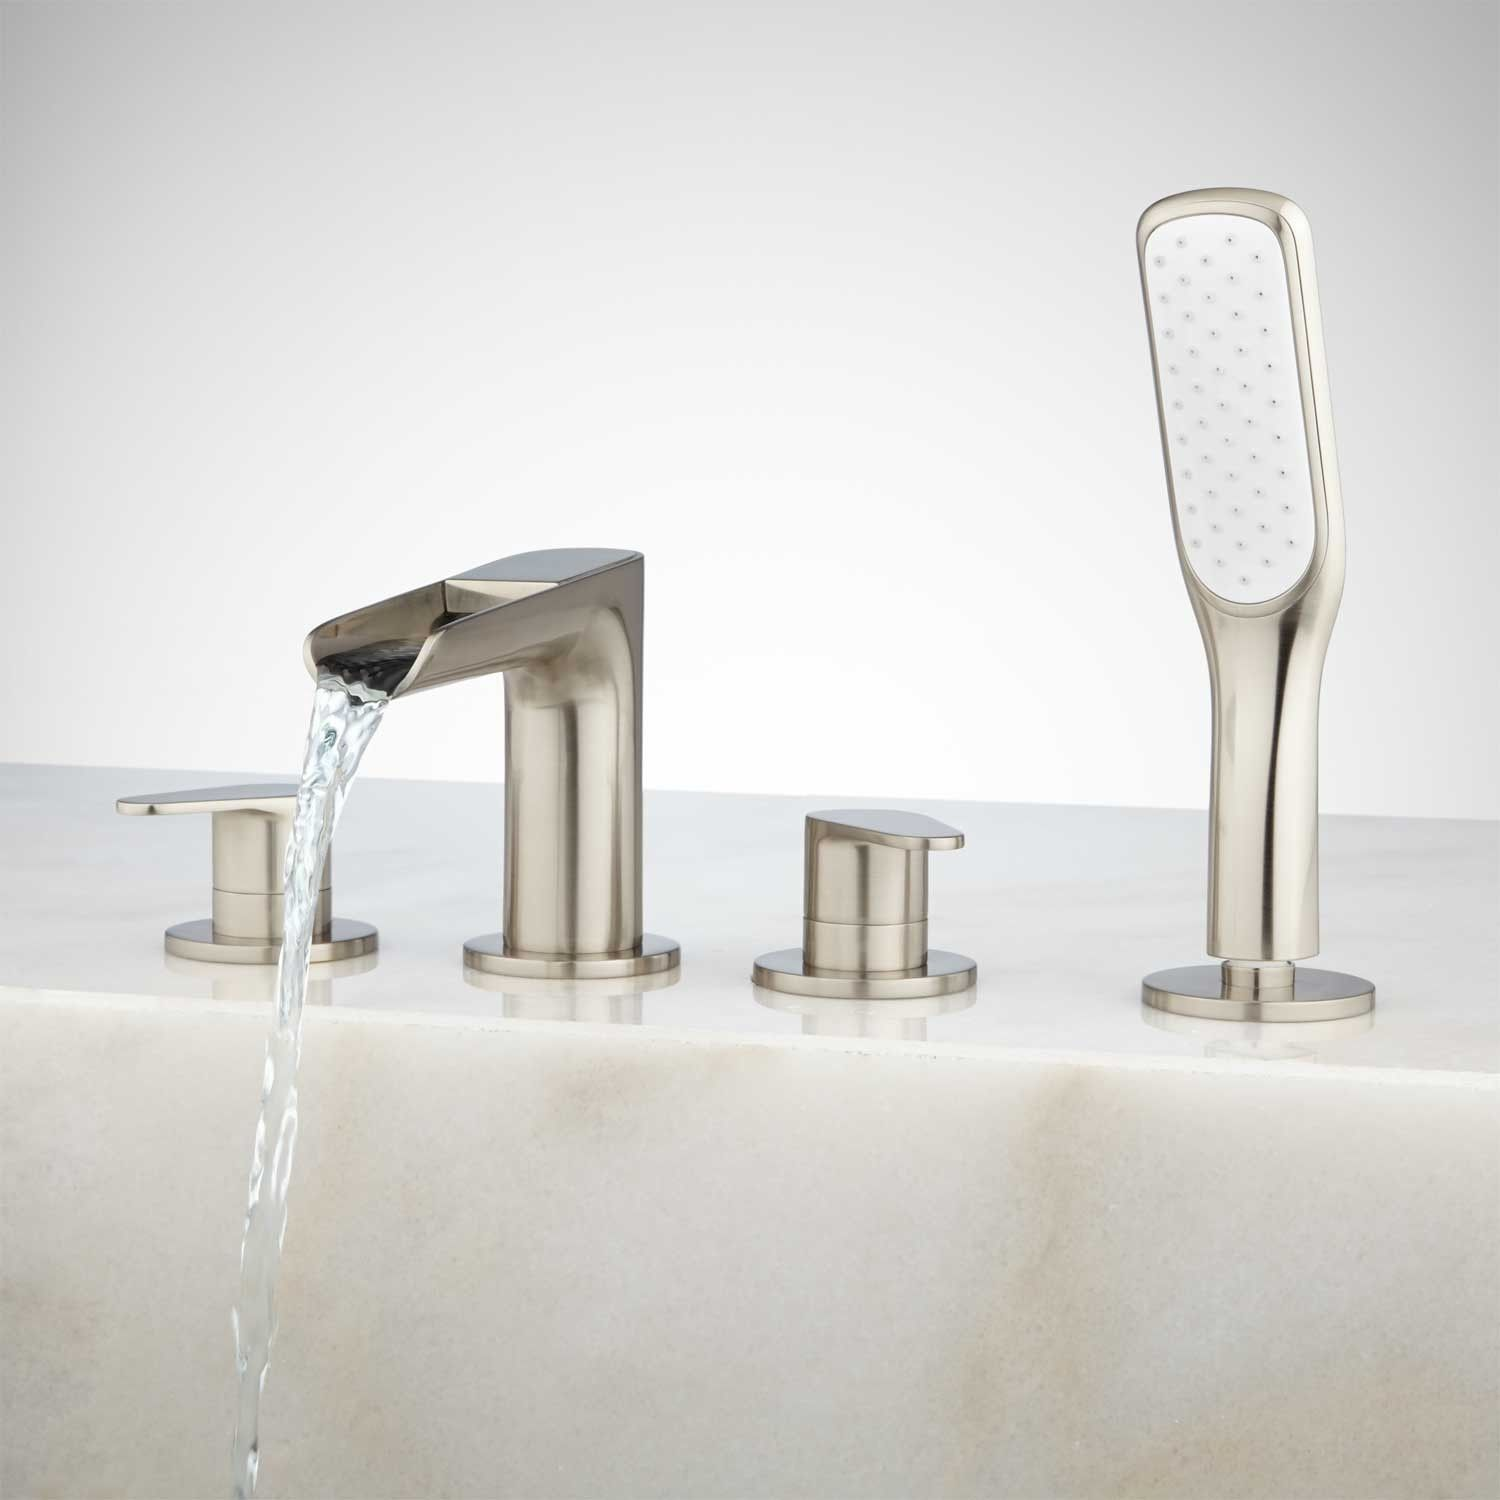 Pagosa Roman Waterfall Tub Faucet and Hand Shower | Faucet, Tubs and ...